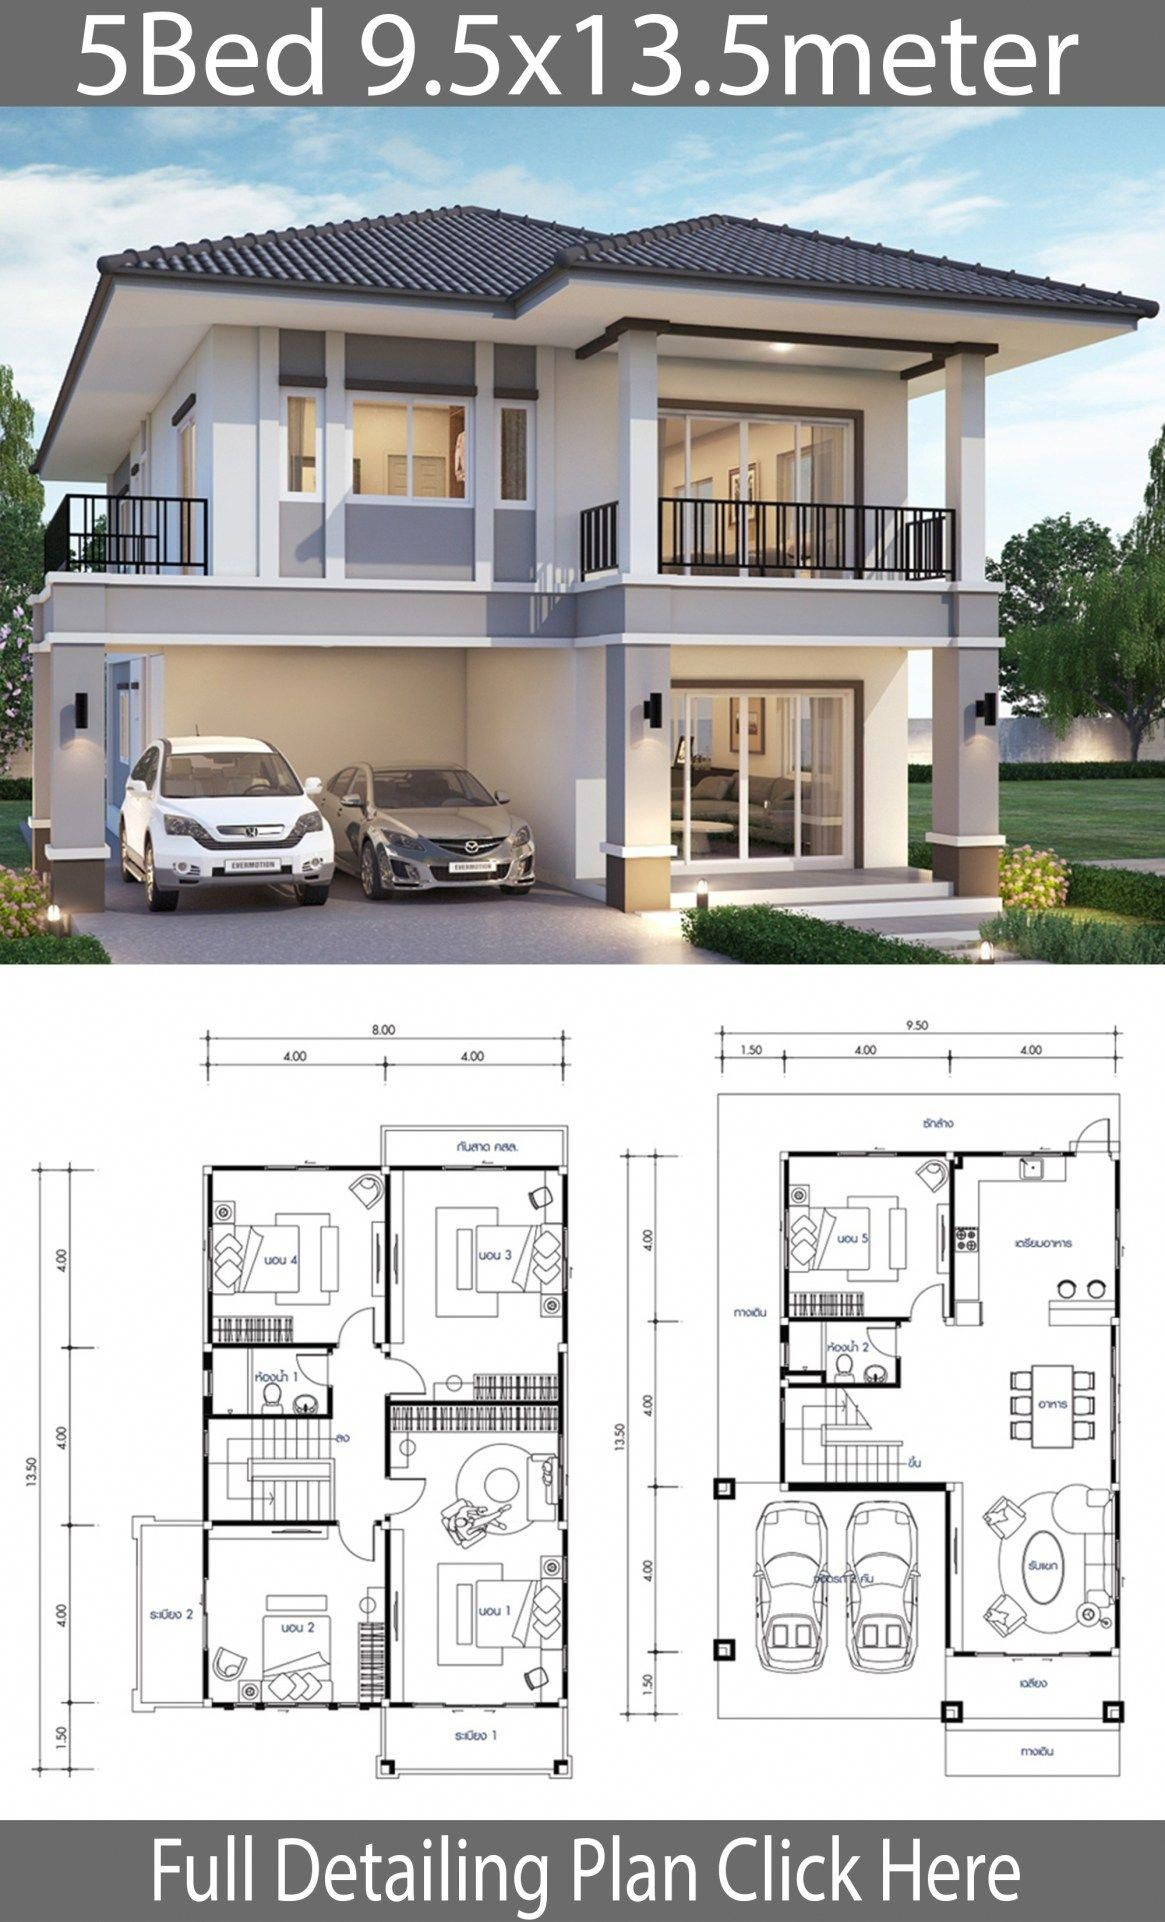 Draw Own House Plans Free Beautiful 5 Free Diy Tiny House Plans to Help You Live the Small